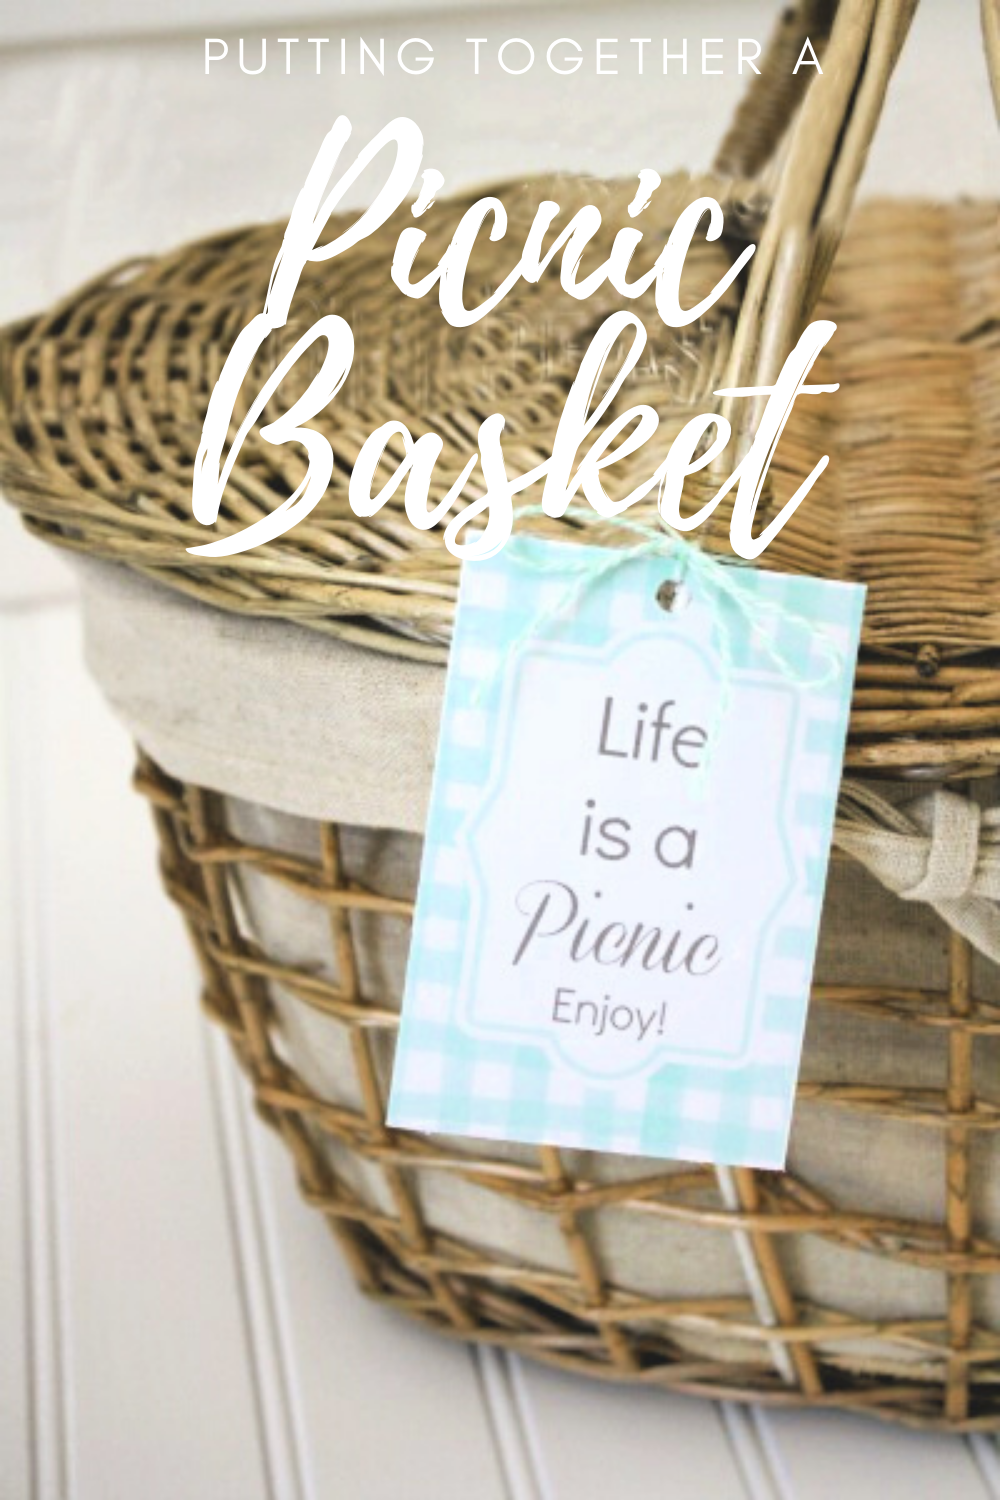 Putting Together A Picnic Basket Gift Life Anchored